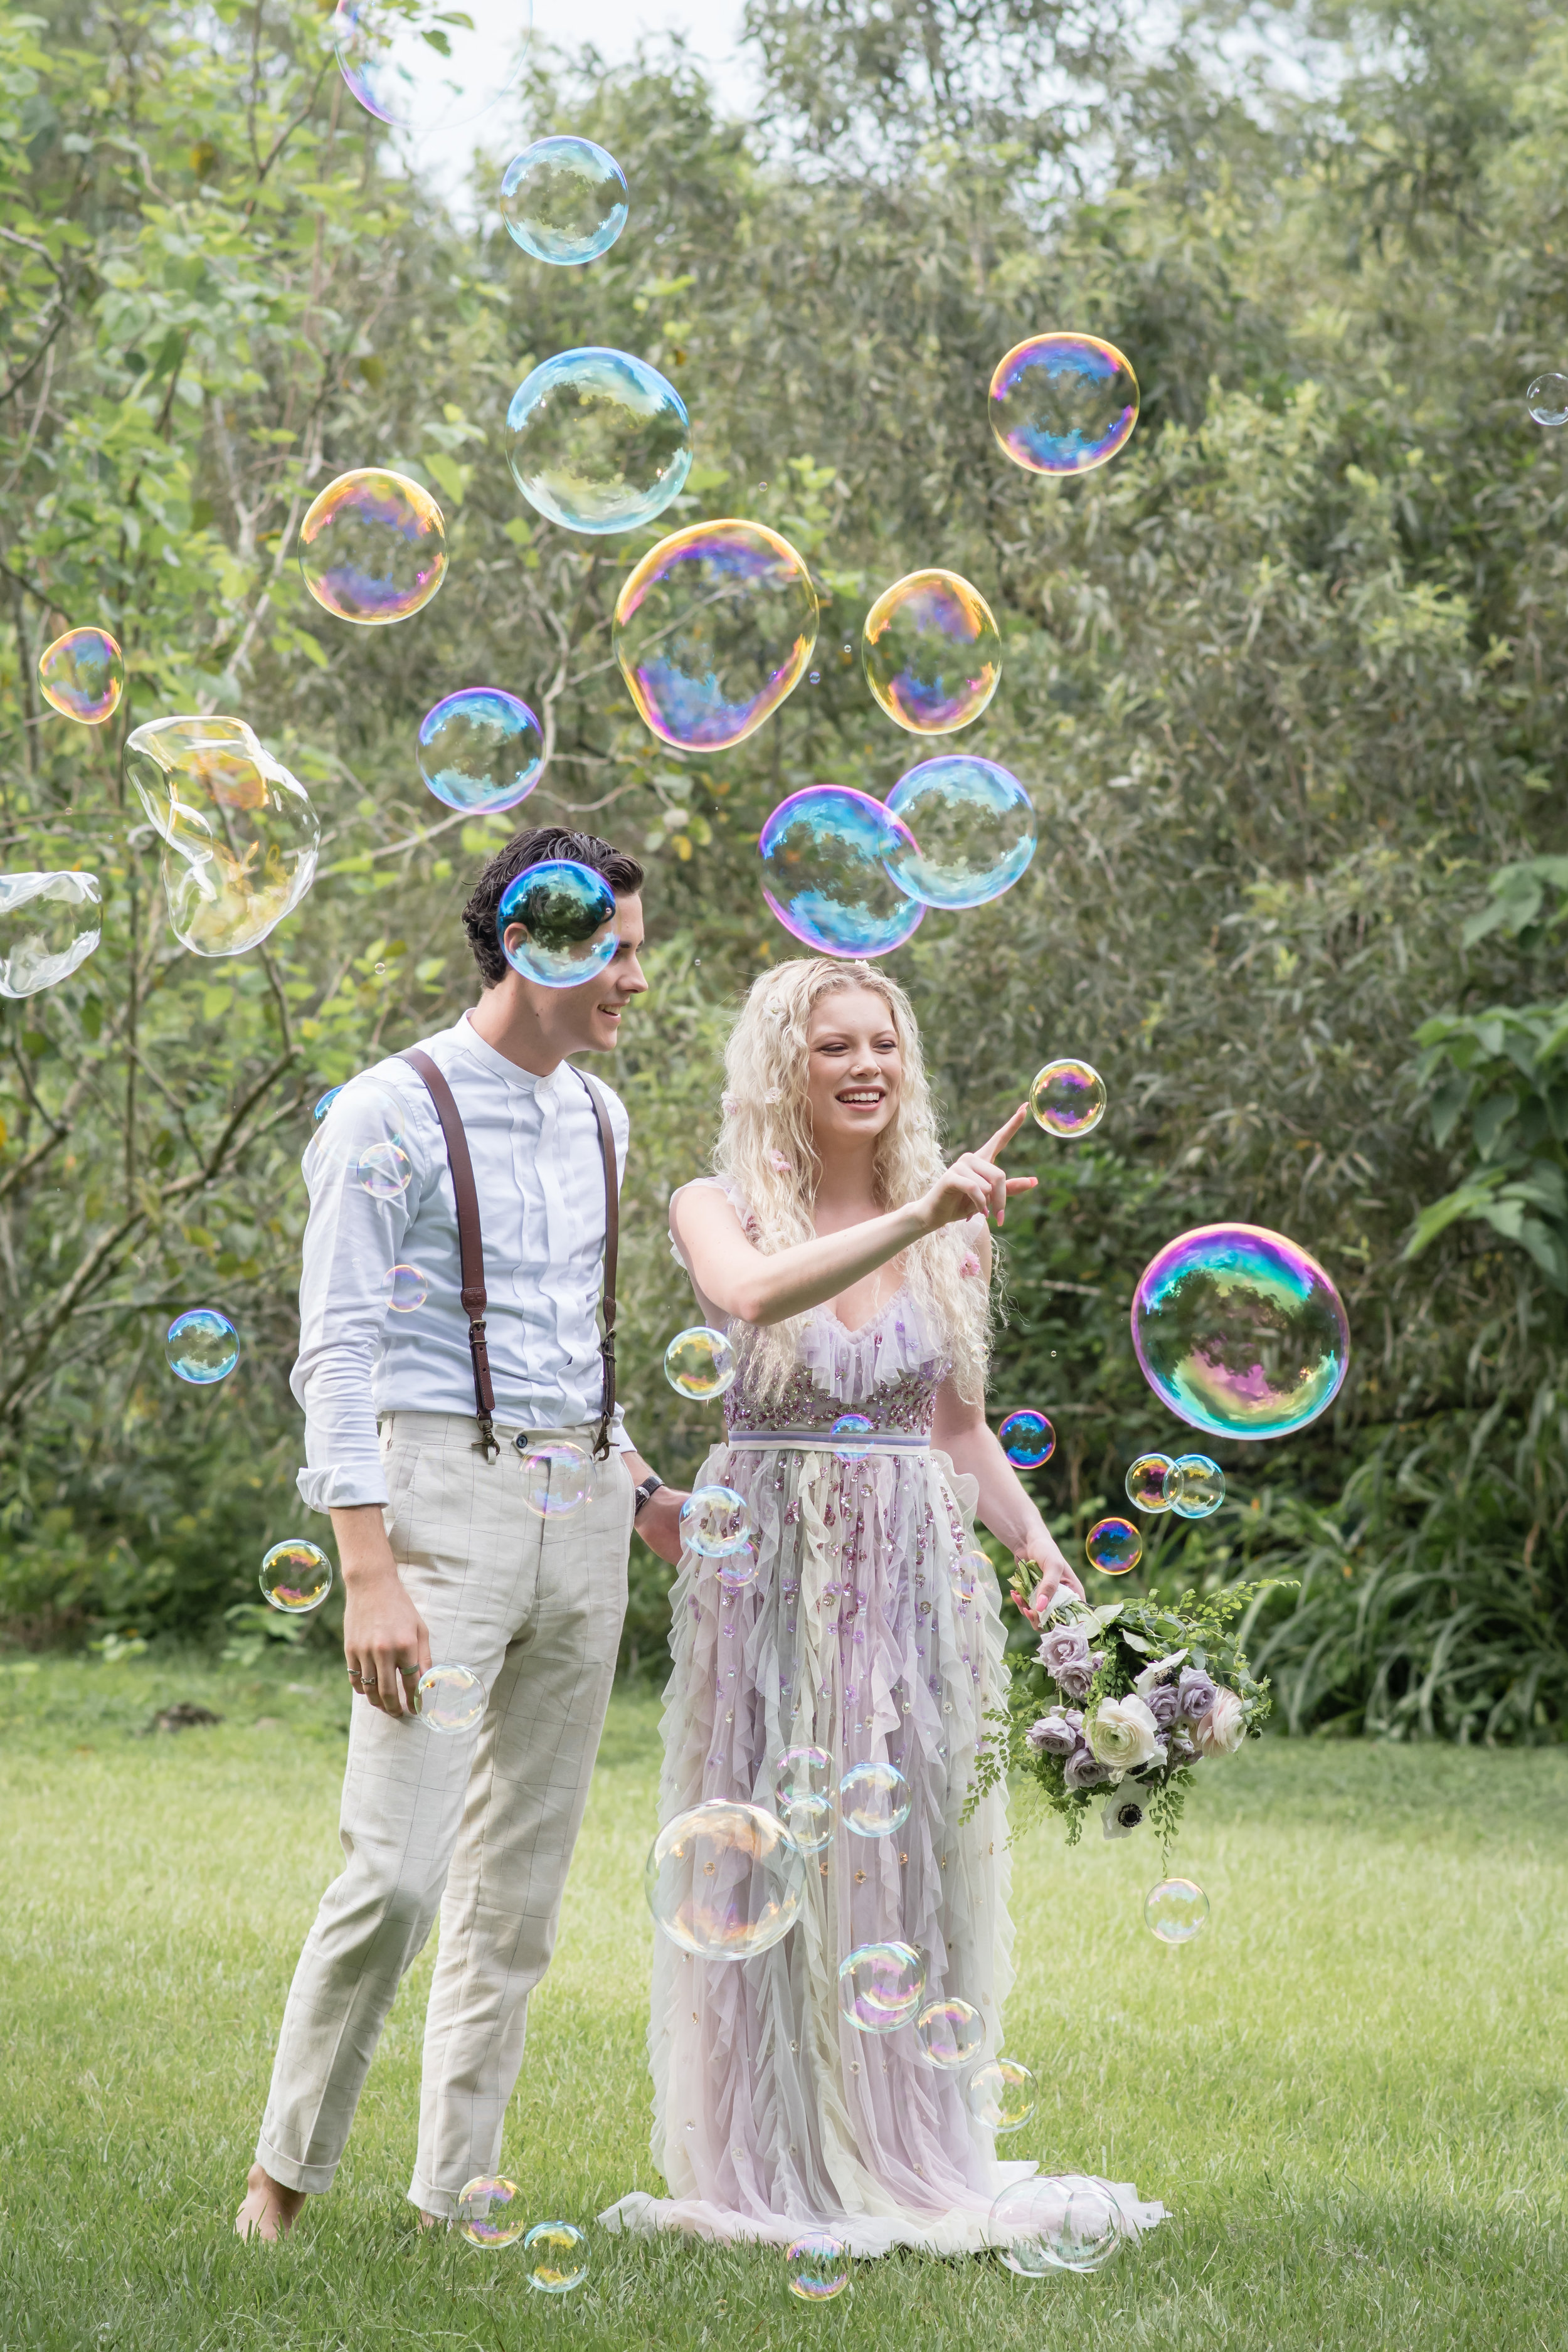 mead-botanical-garden-bridal-inspiration-photos-with-flowers-and-bubbles-orlando-photographer-yanitza-ninett-30.jpg